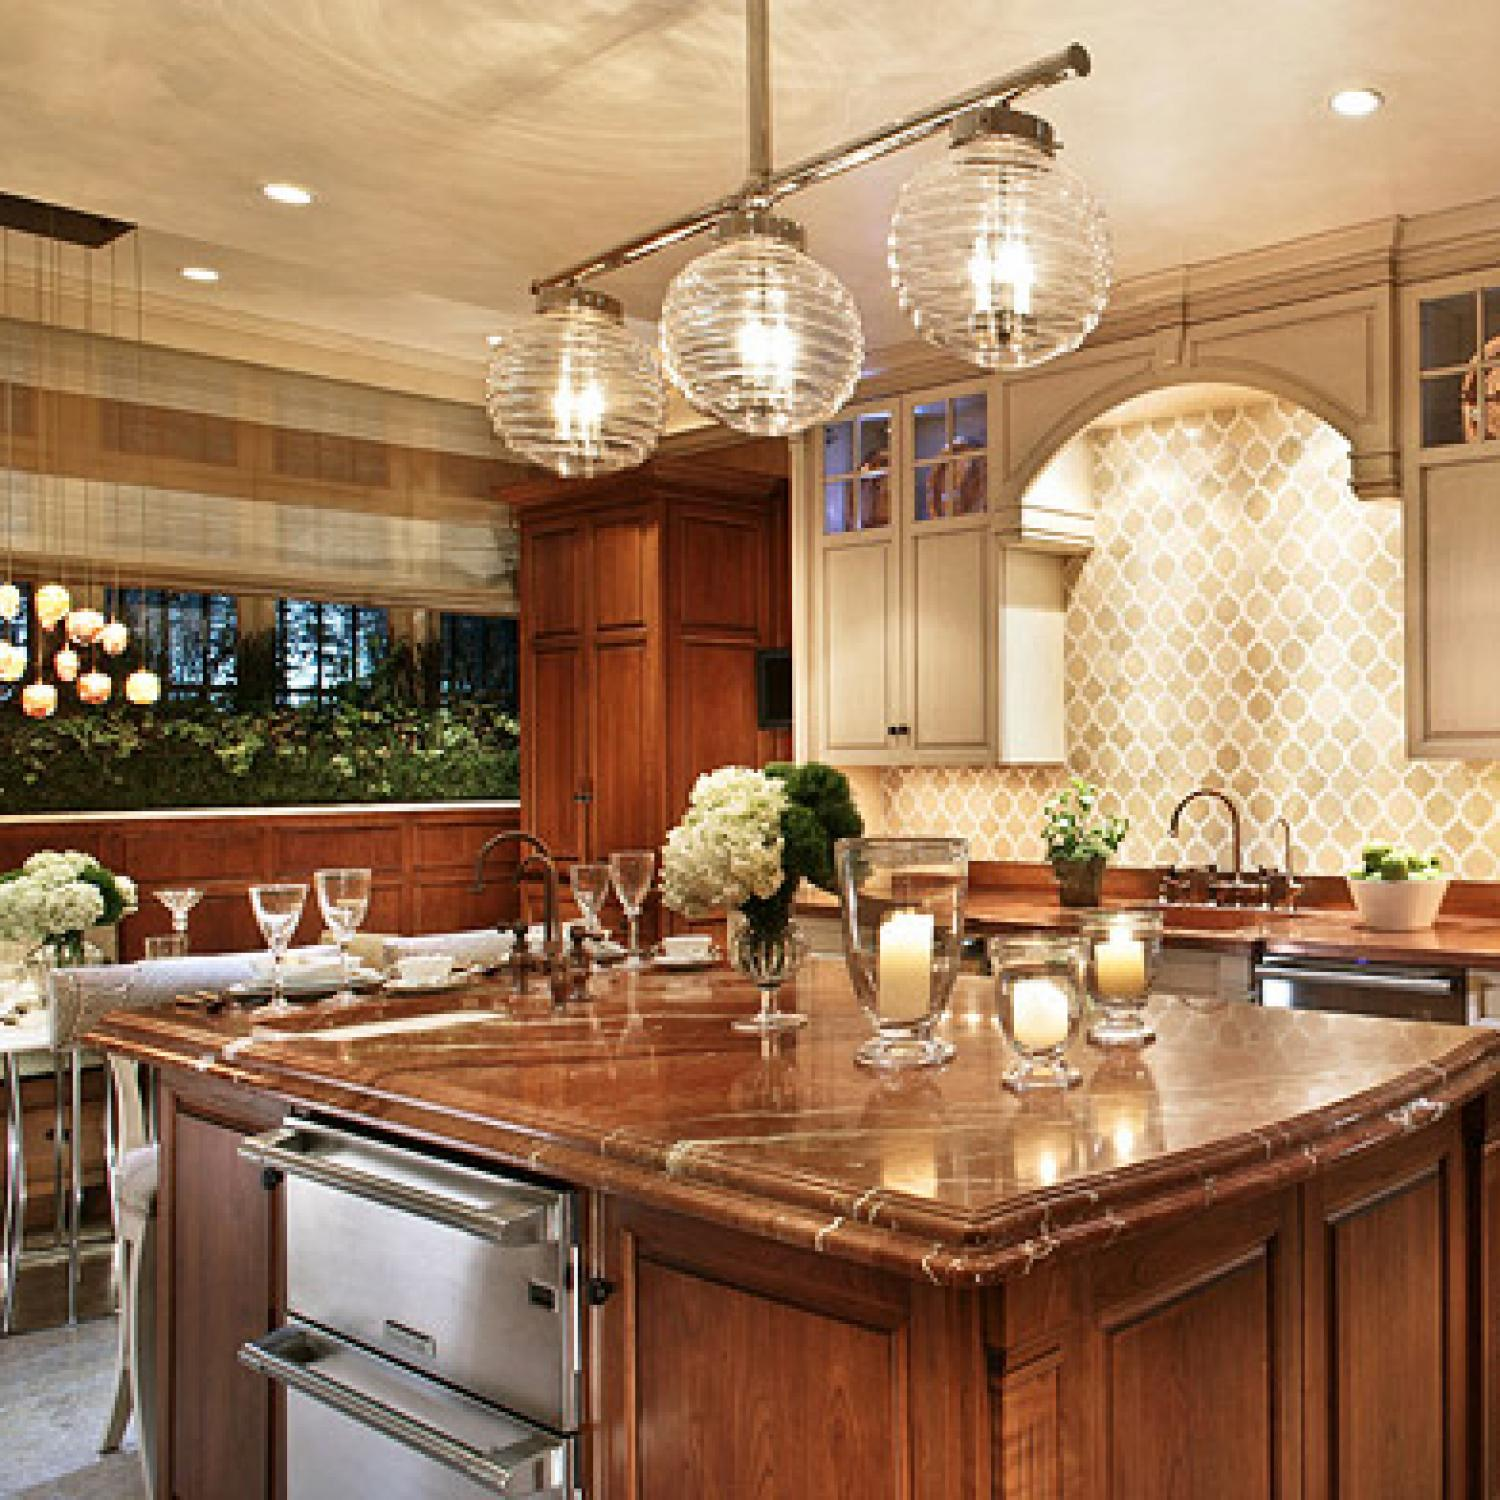 Designs Kitchen: Welcoming, Intimate Showhouse Kitchen